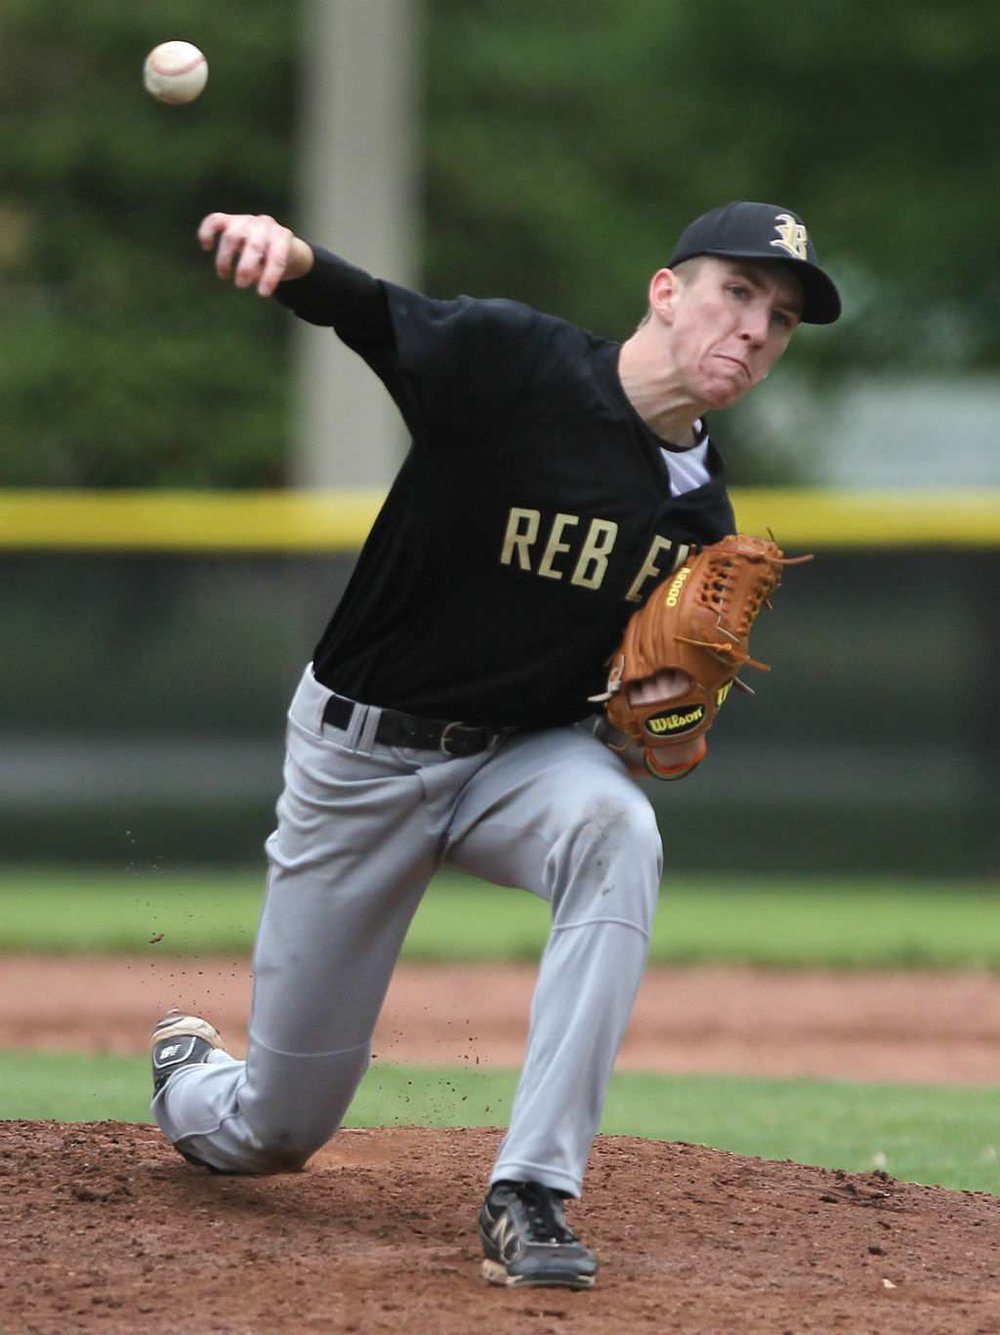 Windsor Selects grad Alex Cull (Windsor, Ont.) allowed just one earned run in five innings for Henry Ford.